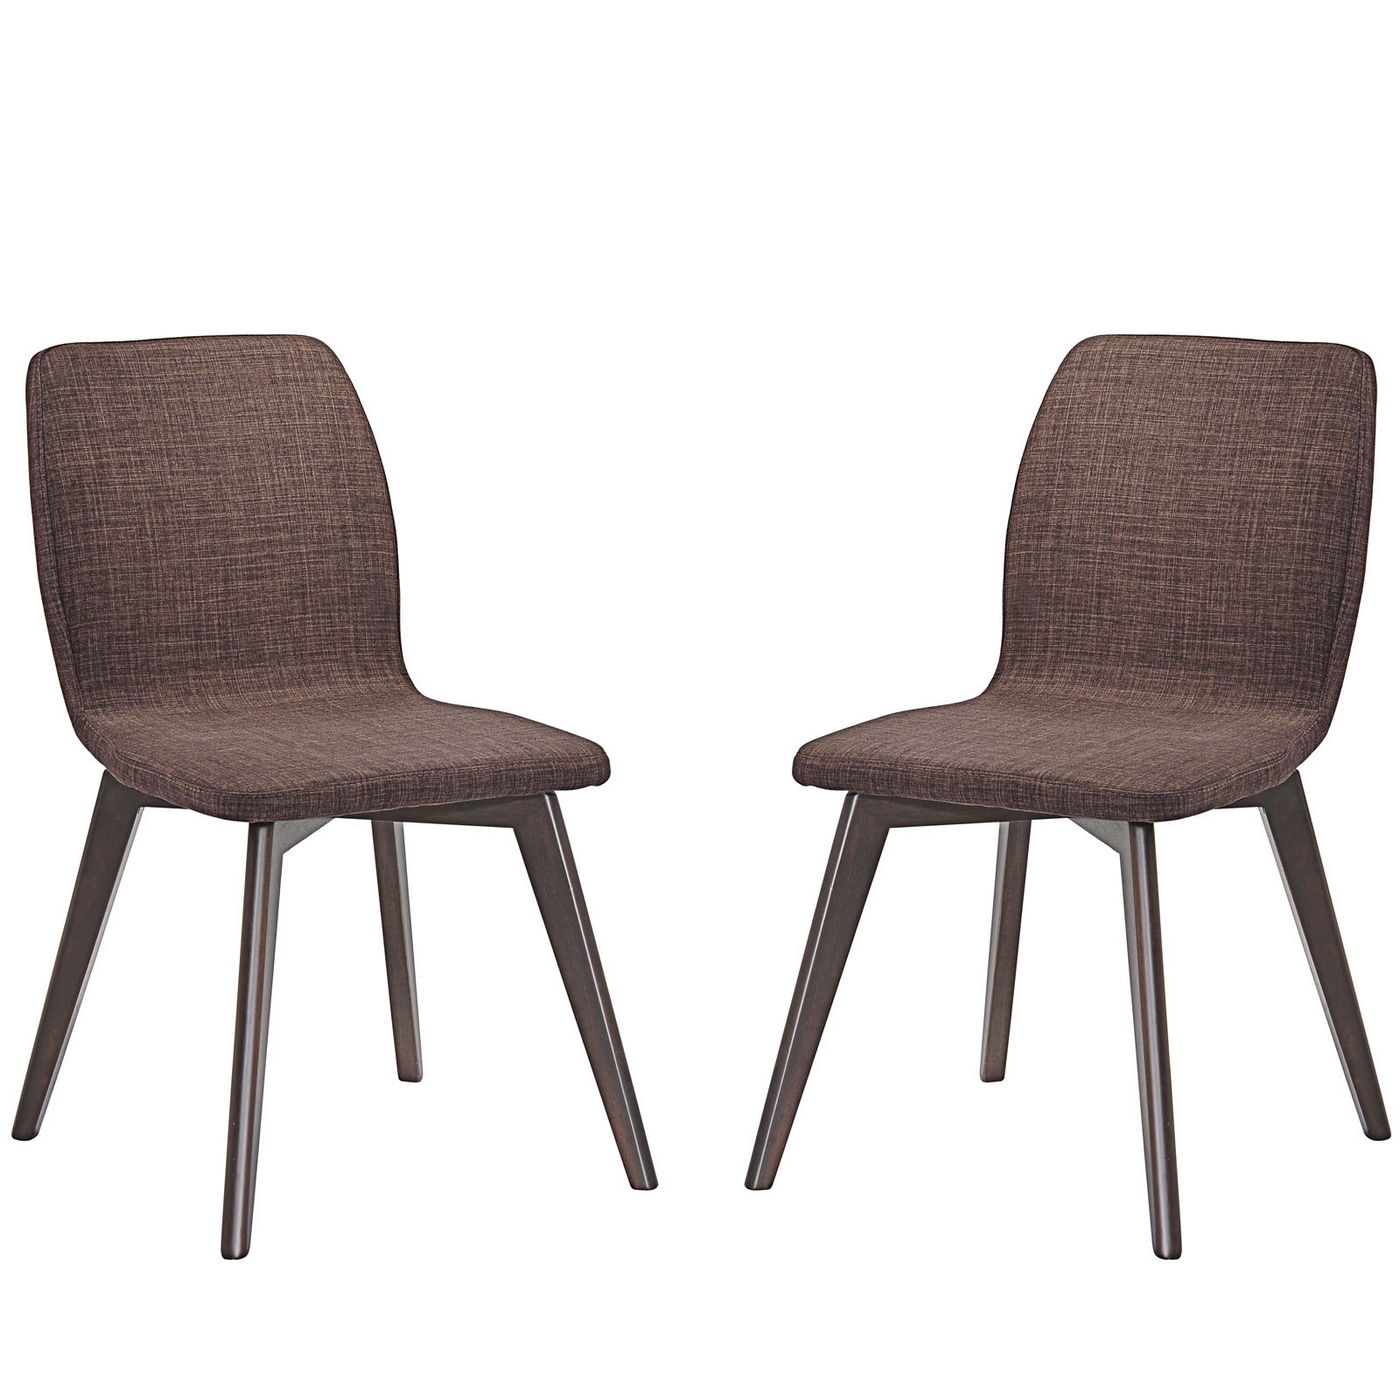 Wonderful image of Proclaim Contemporary Upholstered Dining Side Chair W/wood grained  with #6D5852 color and 1400x1400 pixels